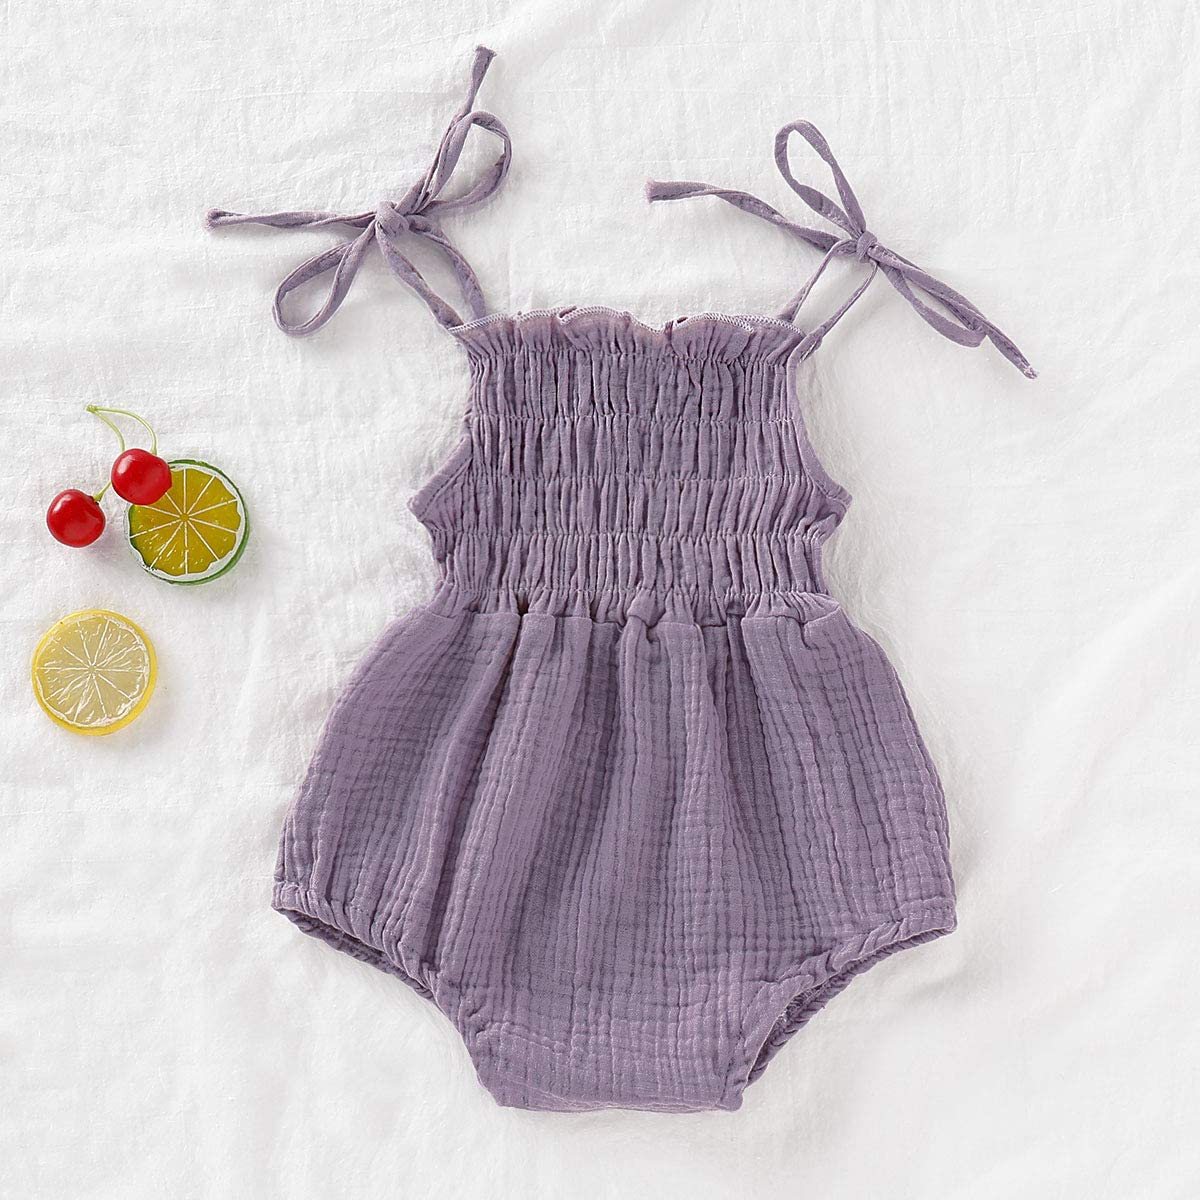 Newborn Baby Girl Clothes Lace Romper Linen Sleeveless Infant Jumpsuit Toddler Summer Clothes Onesies Outfit